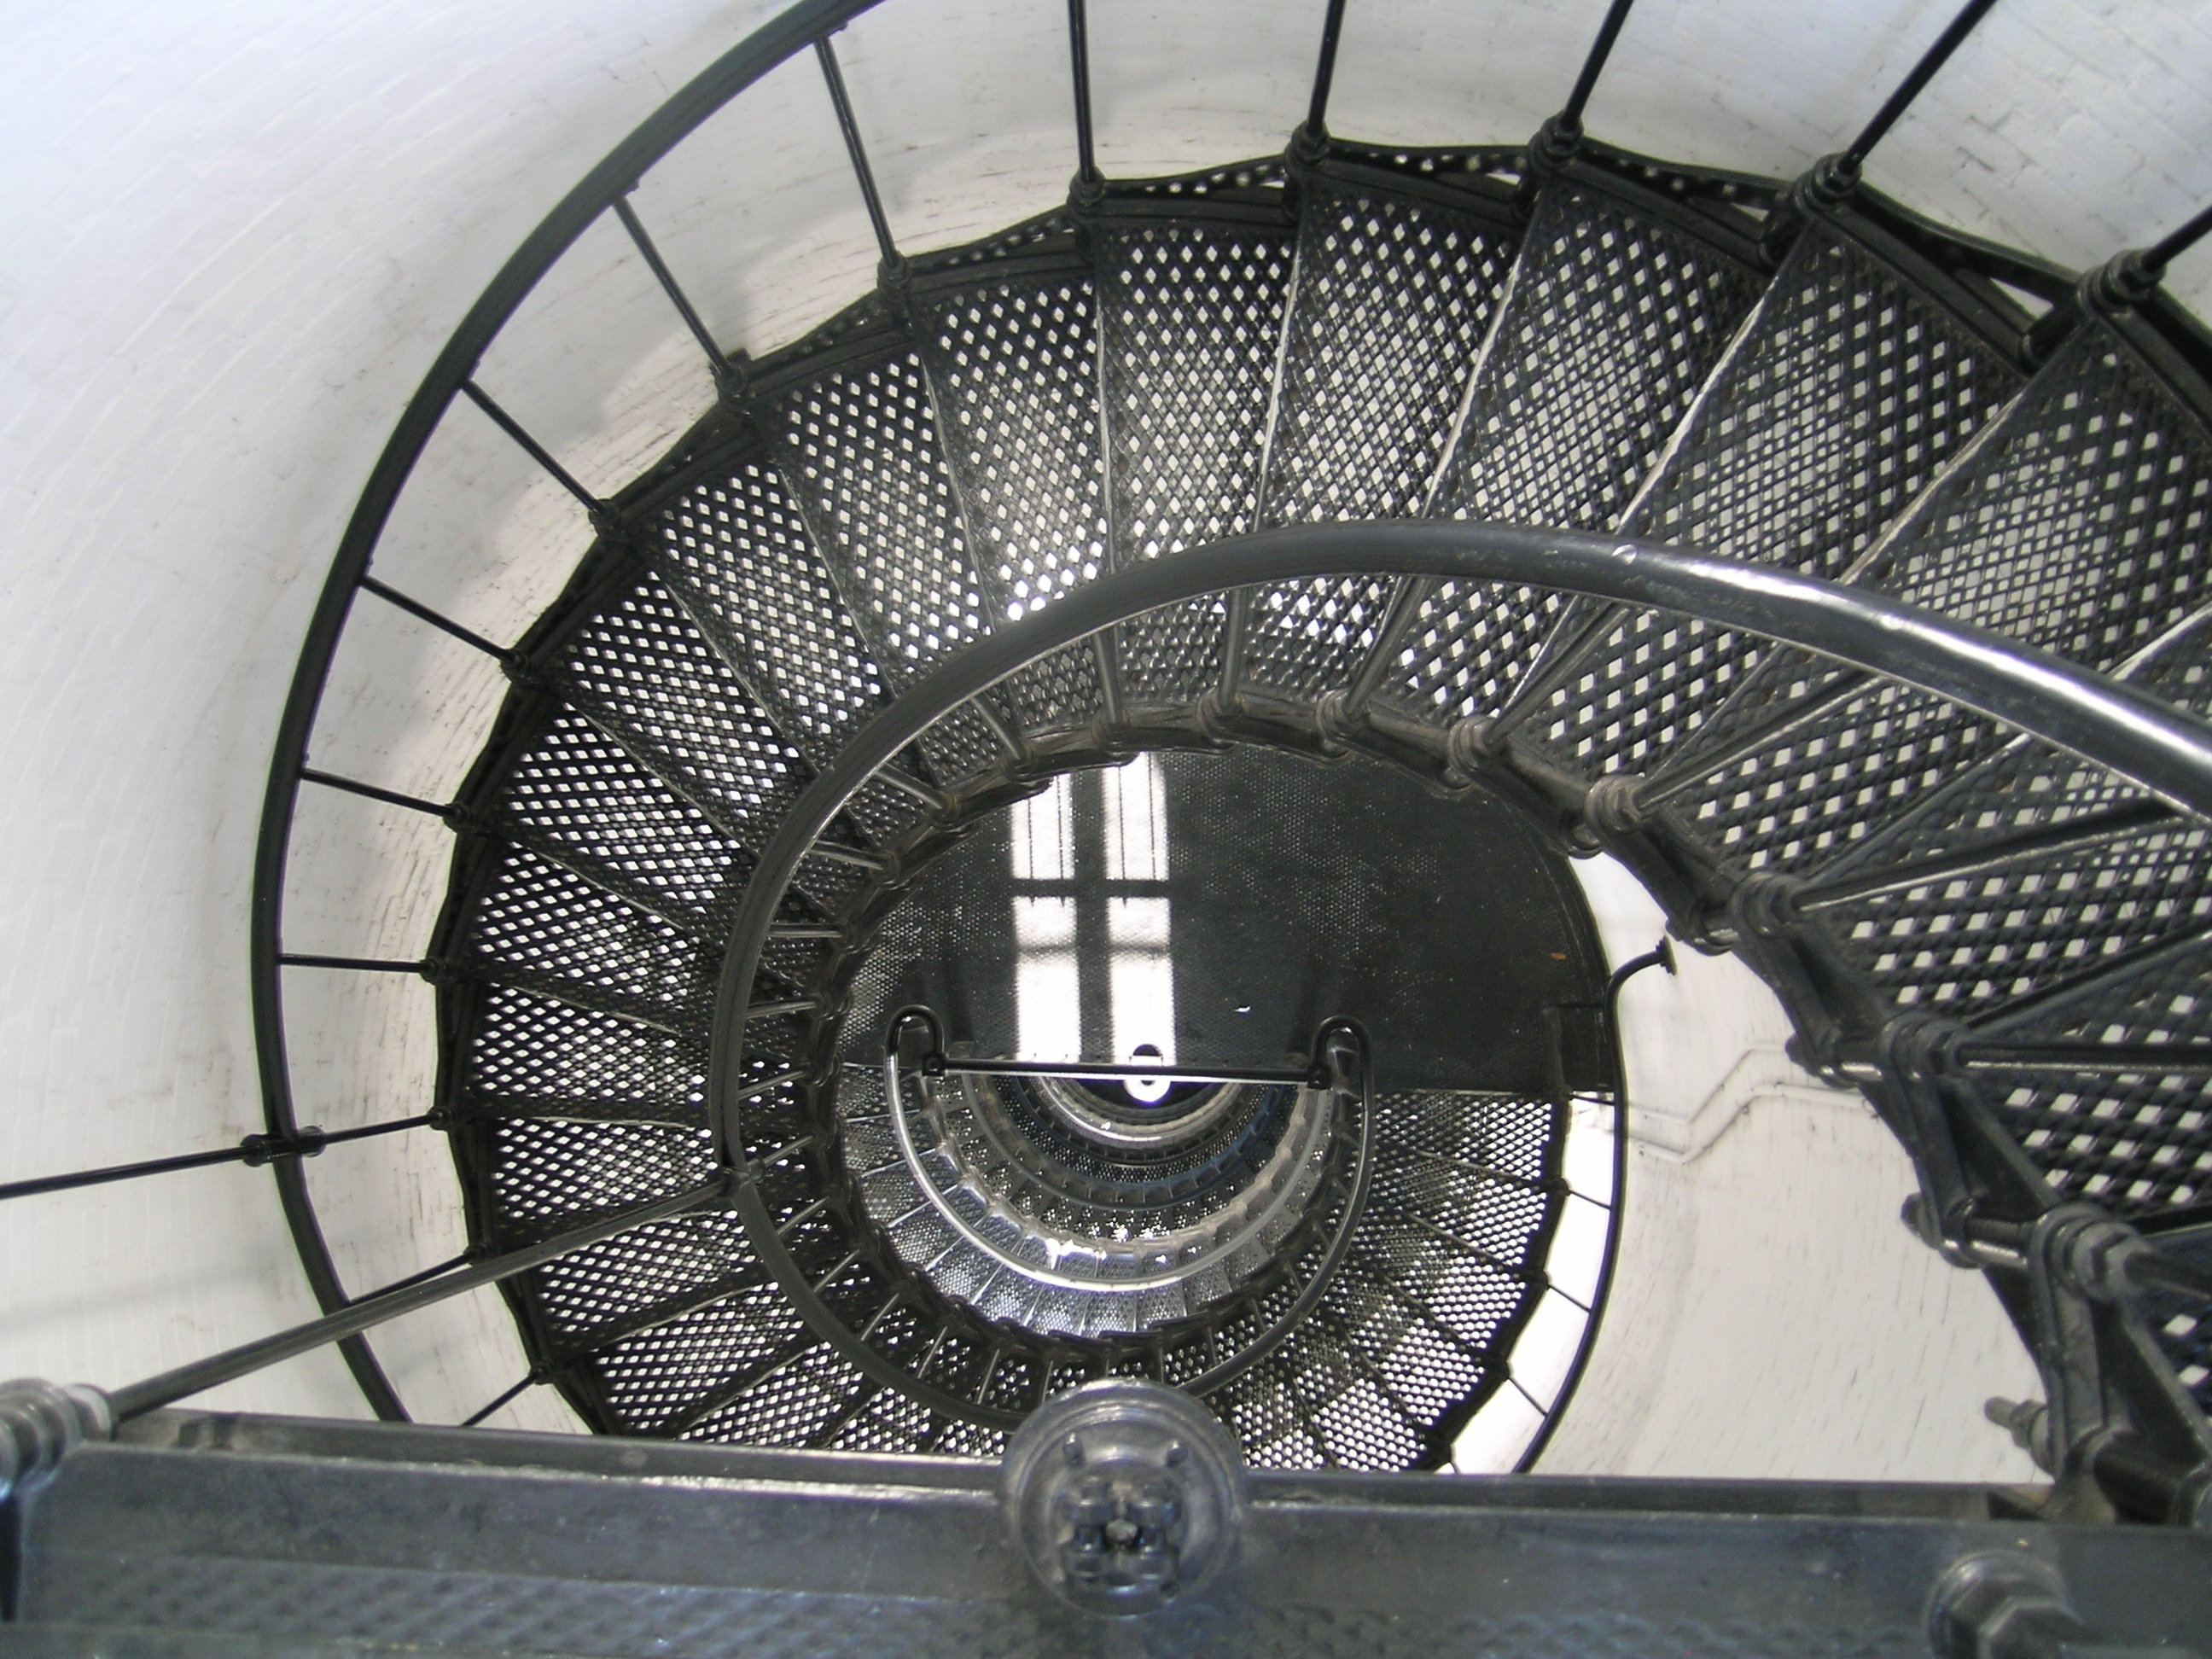 The stairs at the St. Augustine Lighthouse leading to the top of the tower